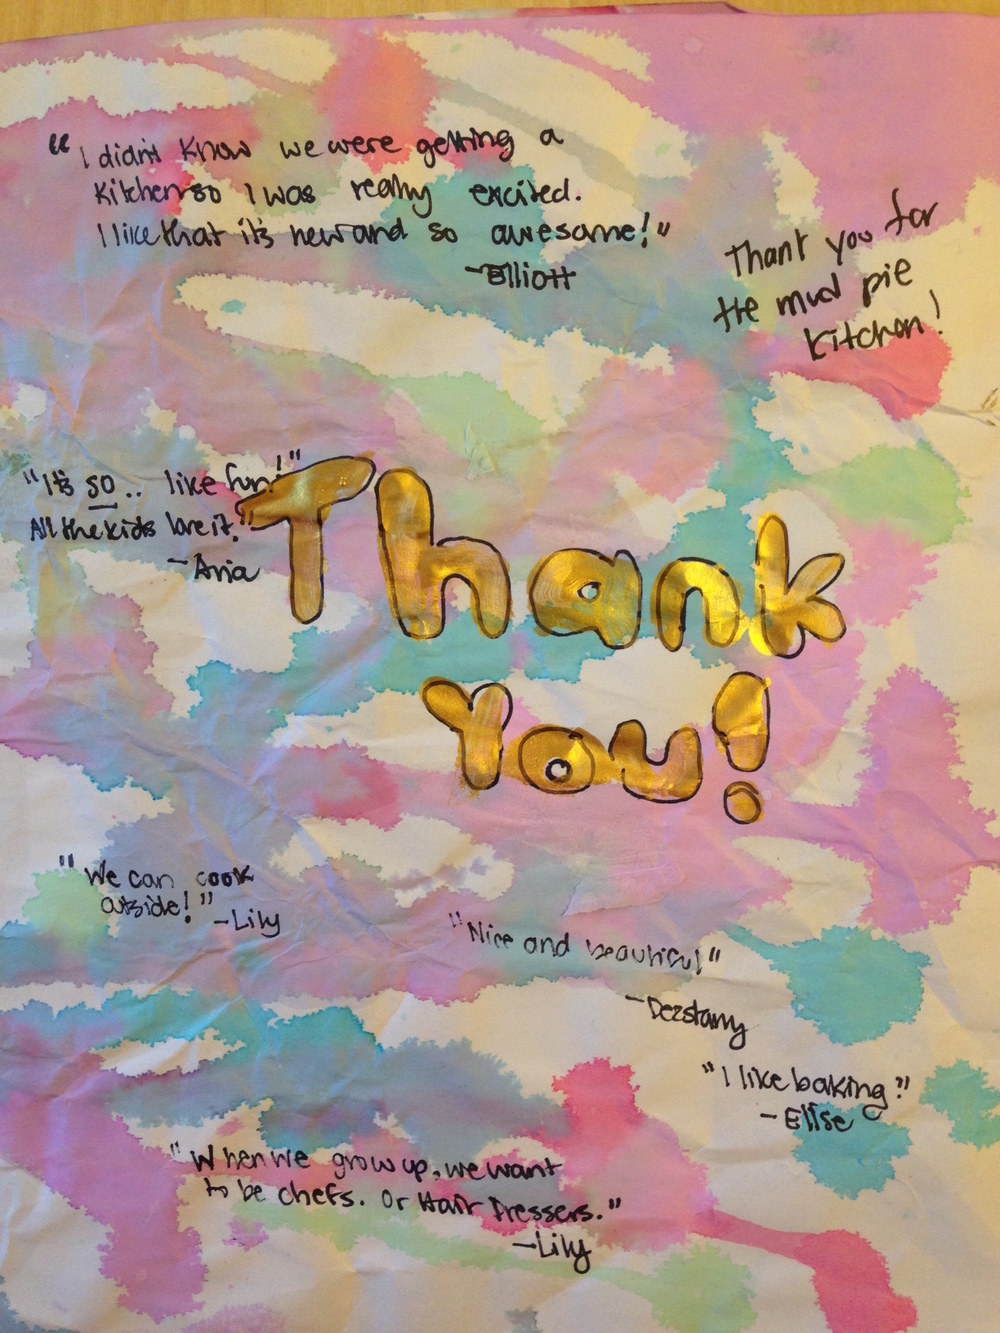 Fairmont Thank You Card - Page 1.JPG